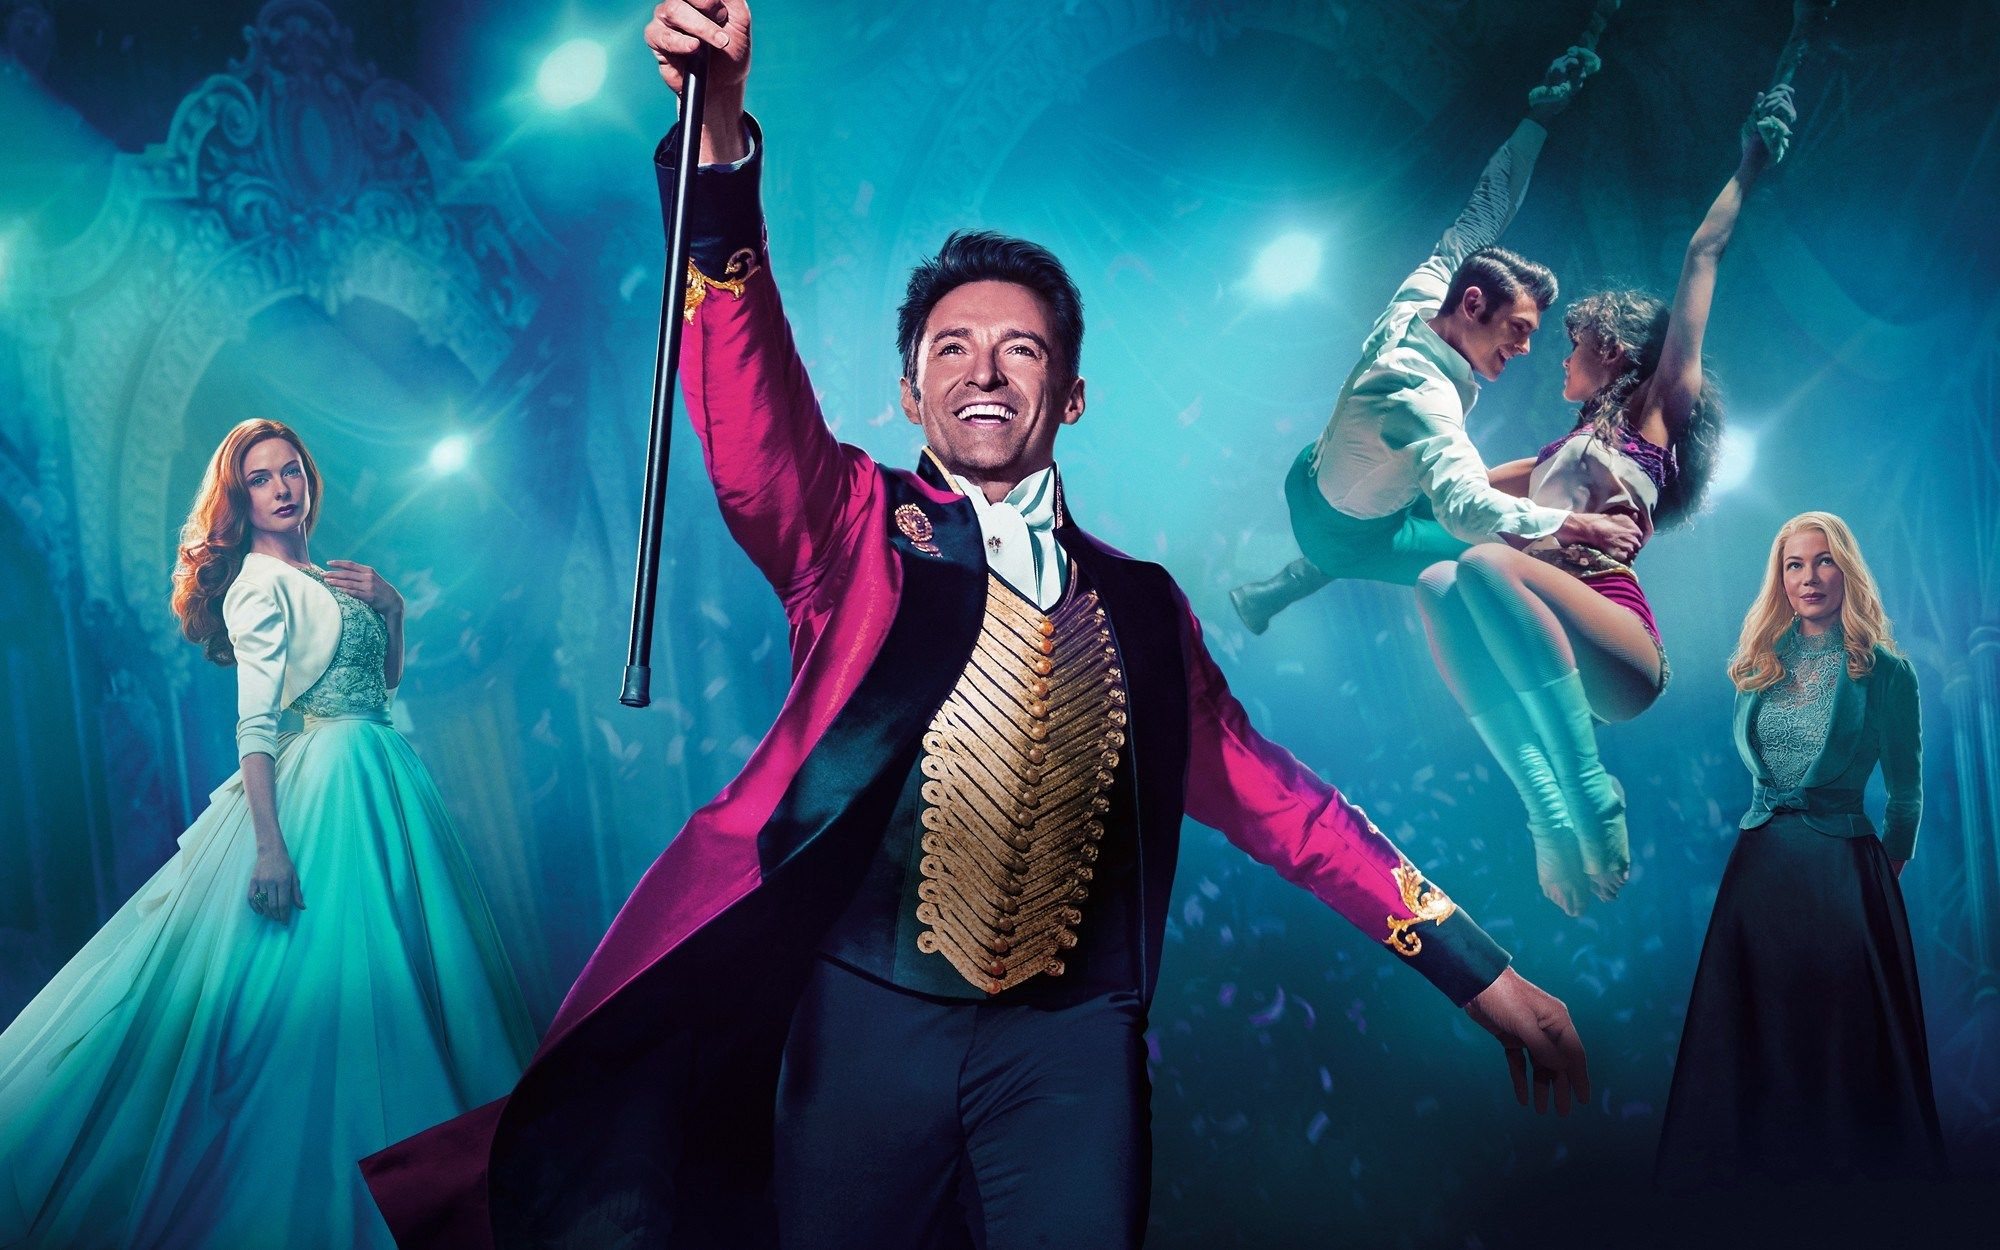 The greatest showman hd